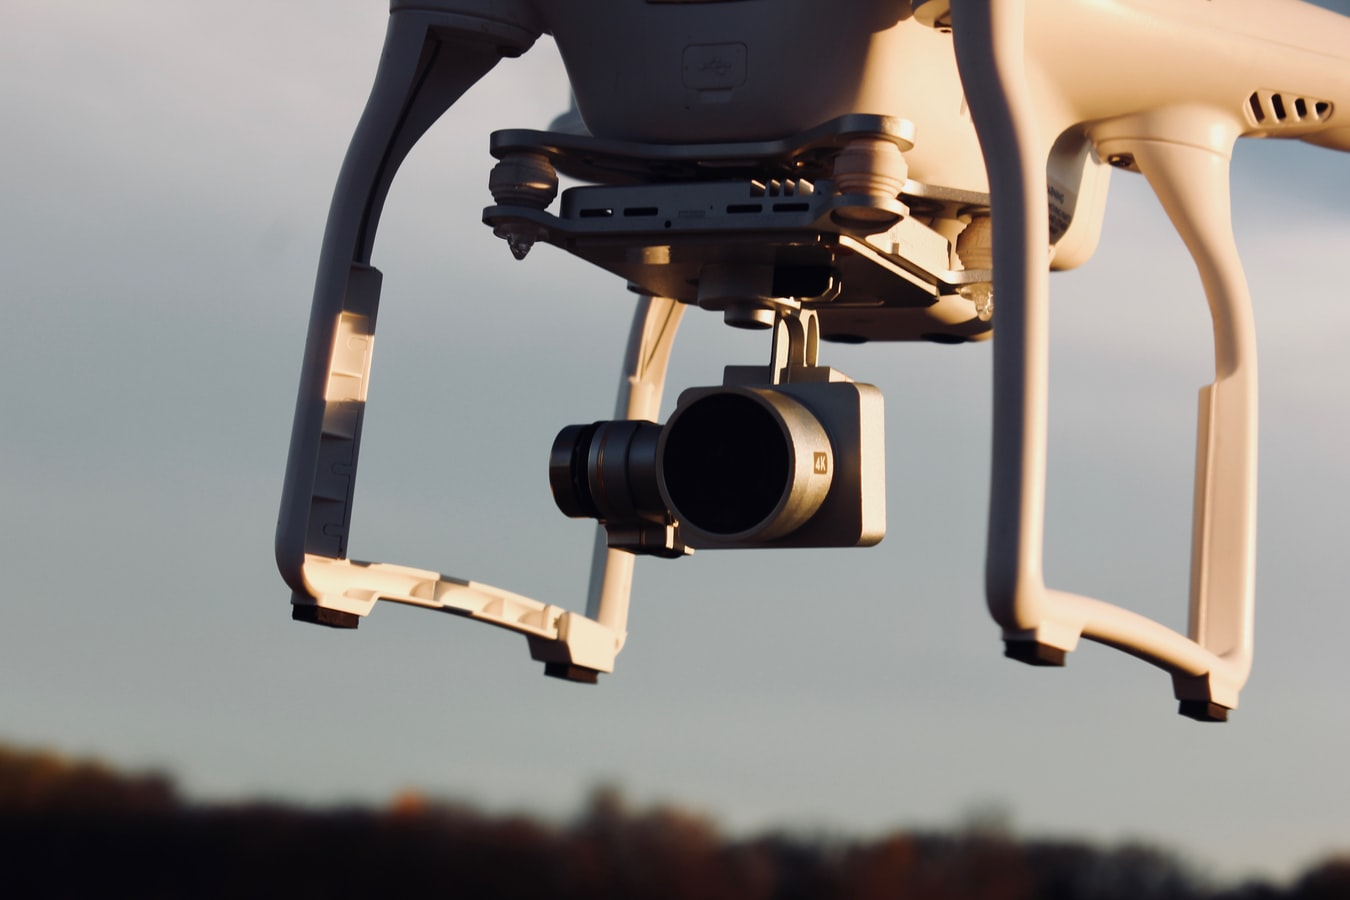 drone registration and accreditation rules